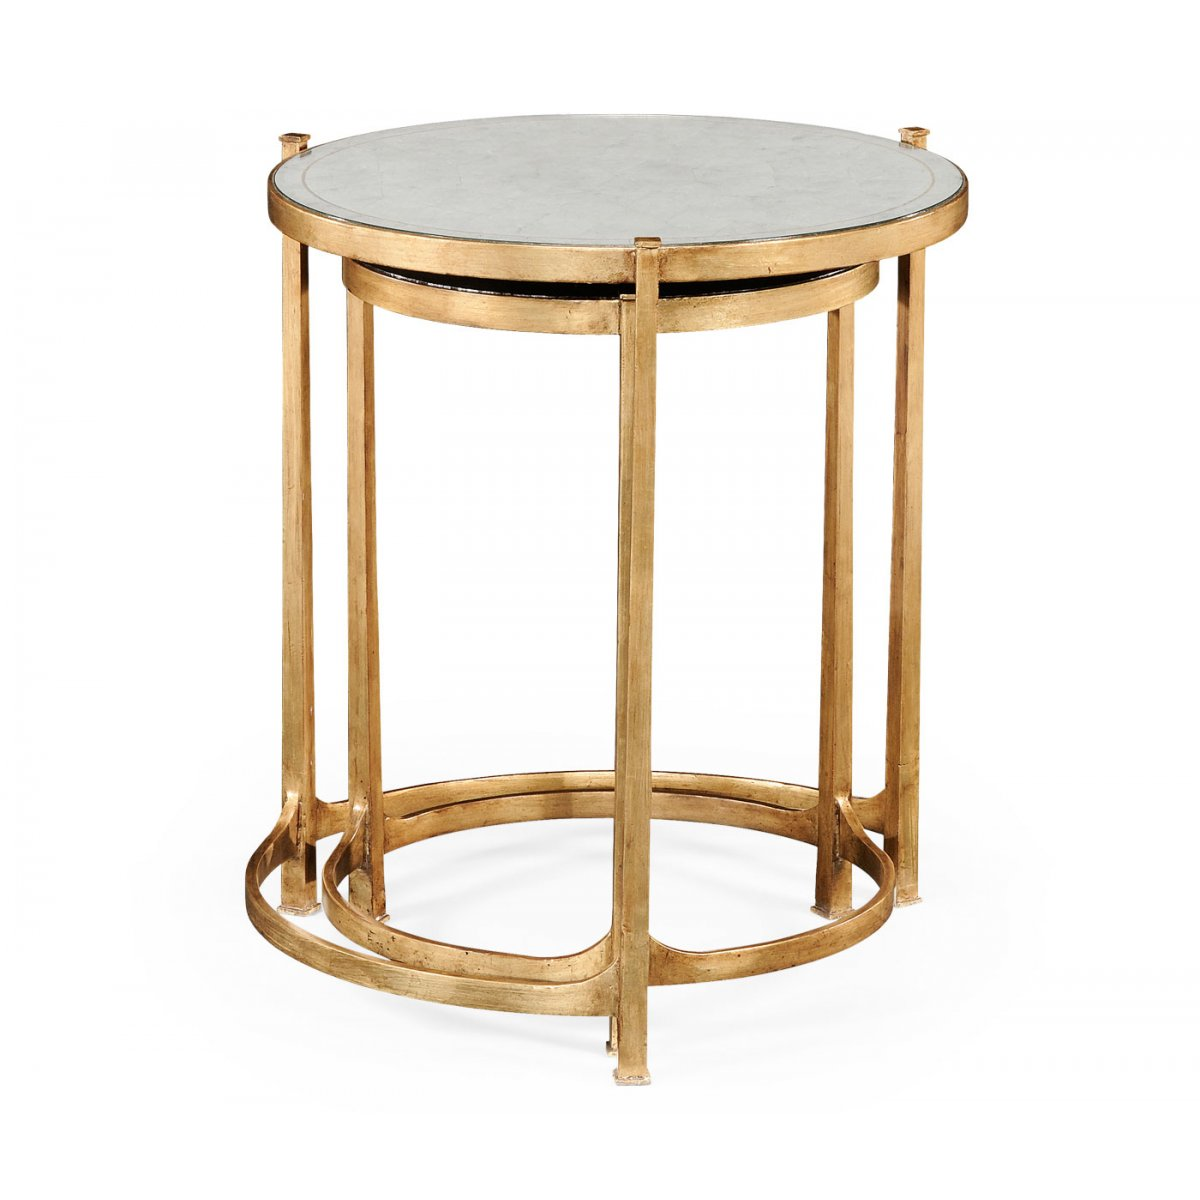 Nest of mirrored tables gold swanky interiors jonathan charles furniture nest of mirrored tables gold watchthetrailerfo